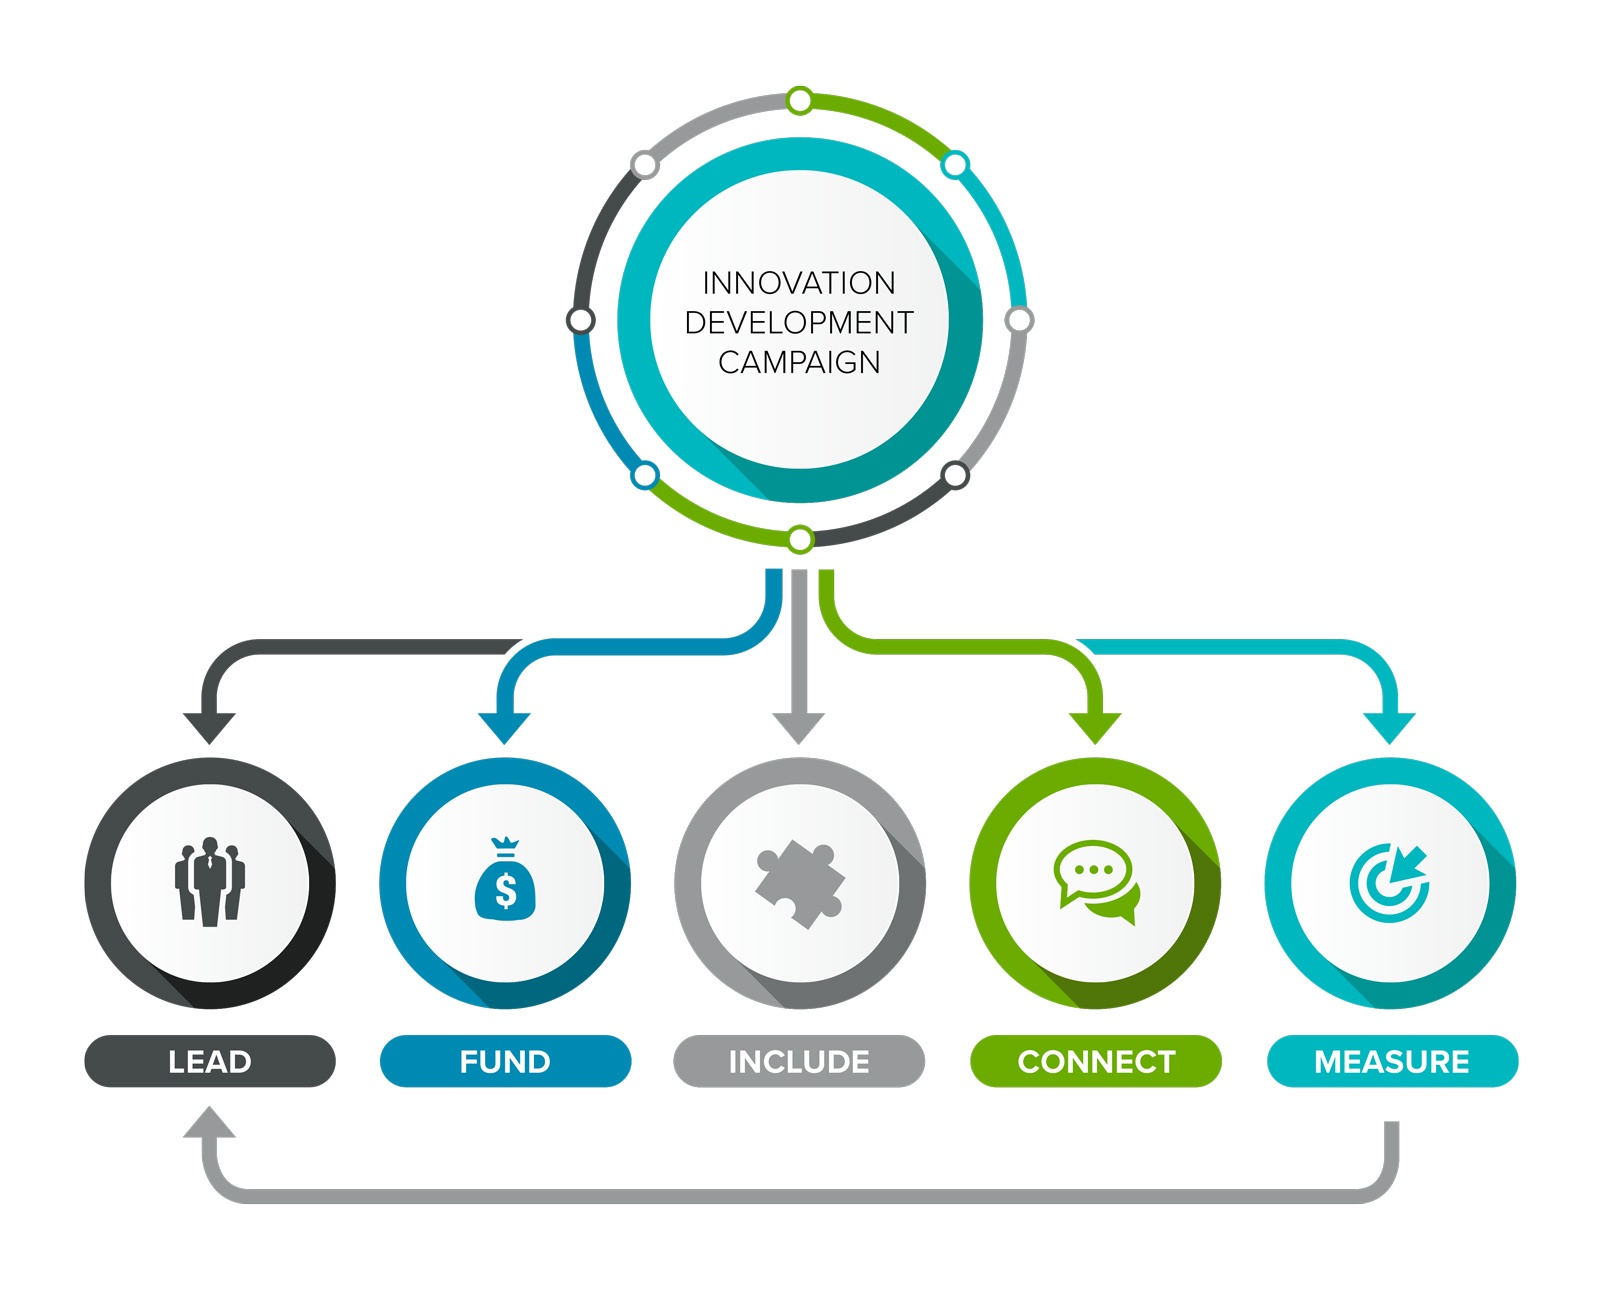 An innovation development campaign infographic design